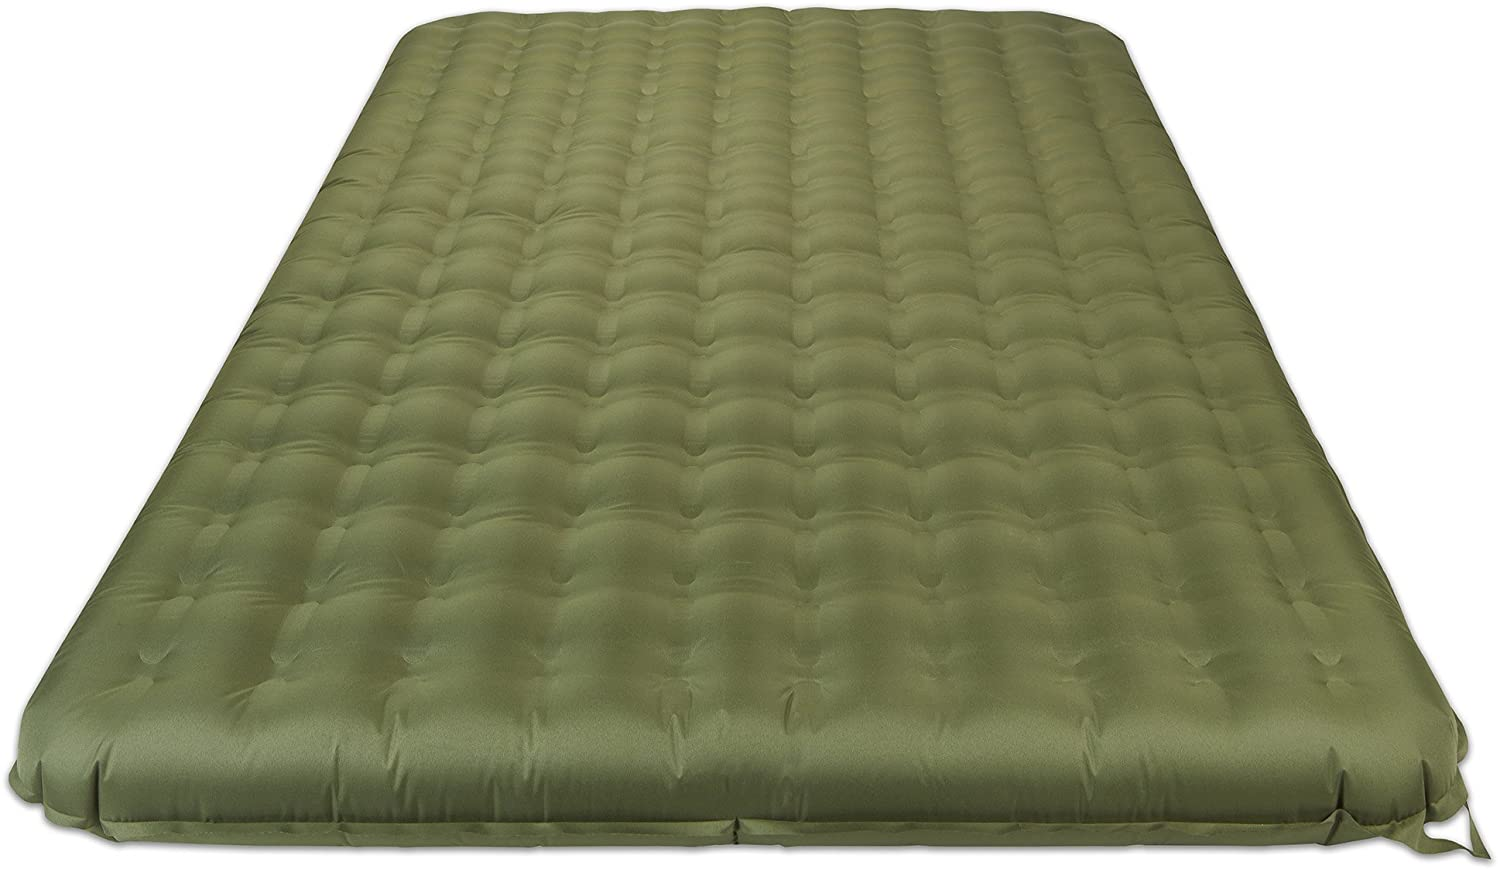 Best Thin Air Mattress For Camping 5 Top Models Air Bed Comparisons